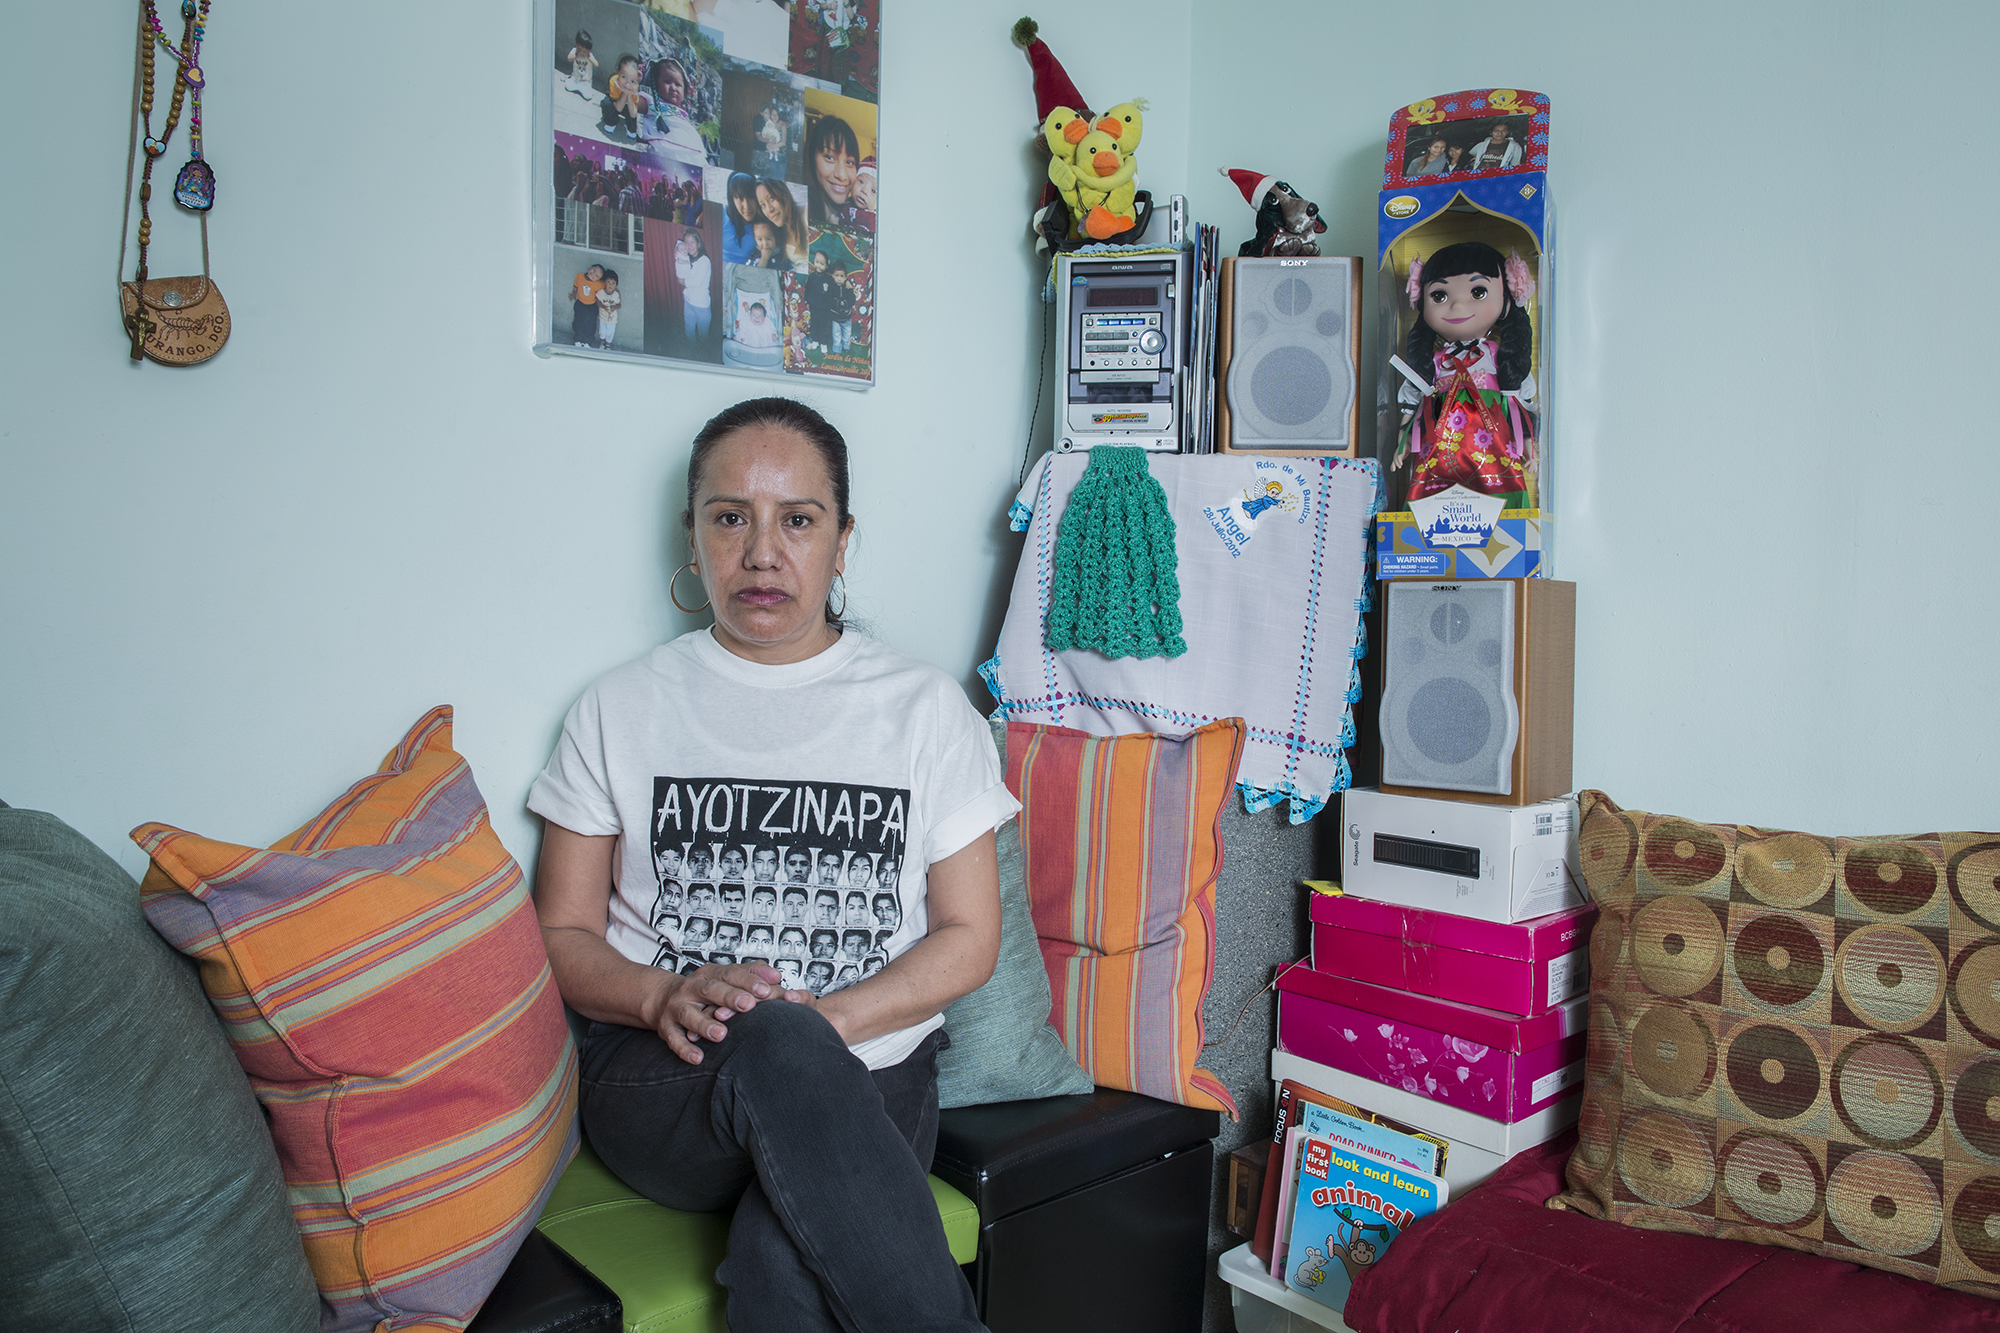 """Alicia Mendieta at her home on 62nd Street in Bay Parkway, Brooklyn. Alicia is an activist for immigrant rights in the city of New York. She has been involved in different pro-immigrant organizations. She came to the United States 16 years ago, leaving all her family back in México. Her grandchildren call her """"la abuelita de las maravillas"""" (wonder Granny). She has worked mainly as a nanny."""